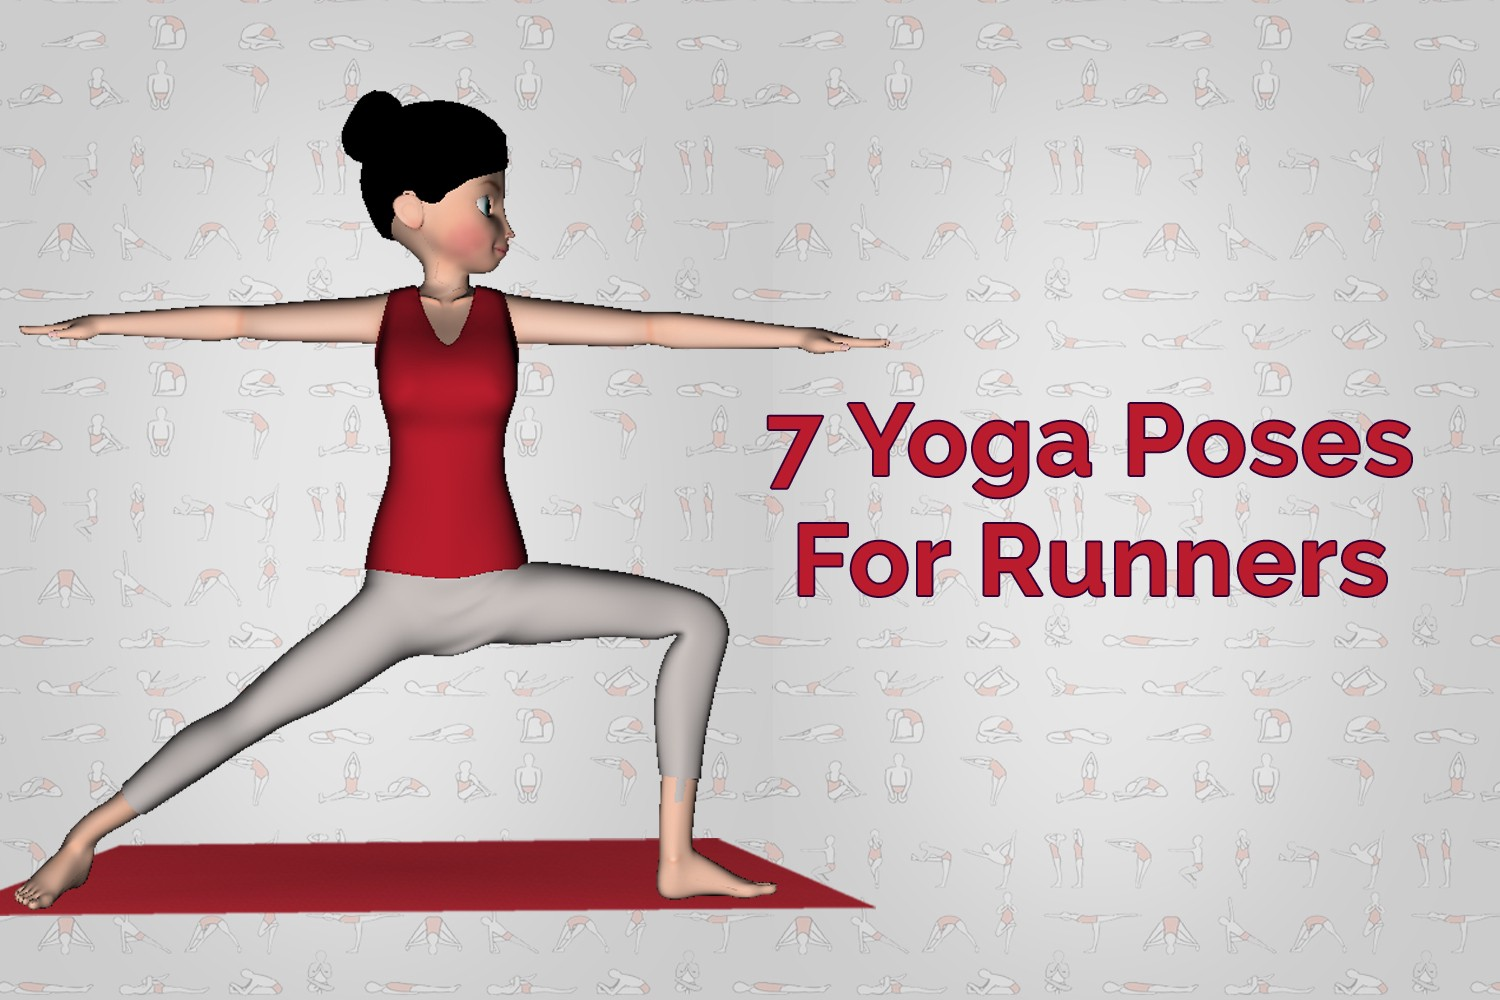 Watch 7 Yoga Poses That Will Sculpt Your Side Abs video